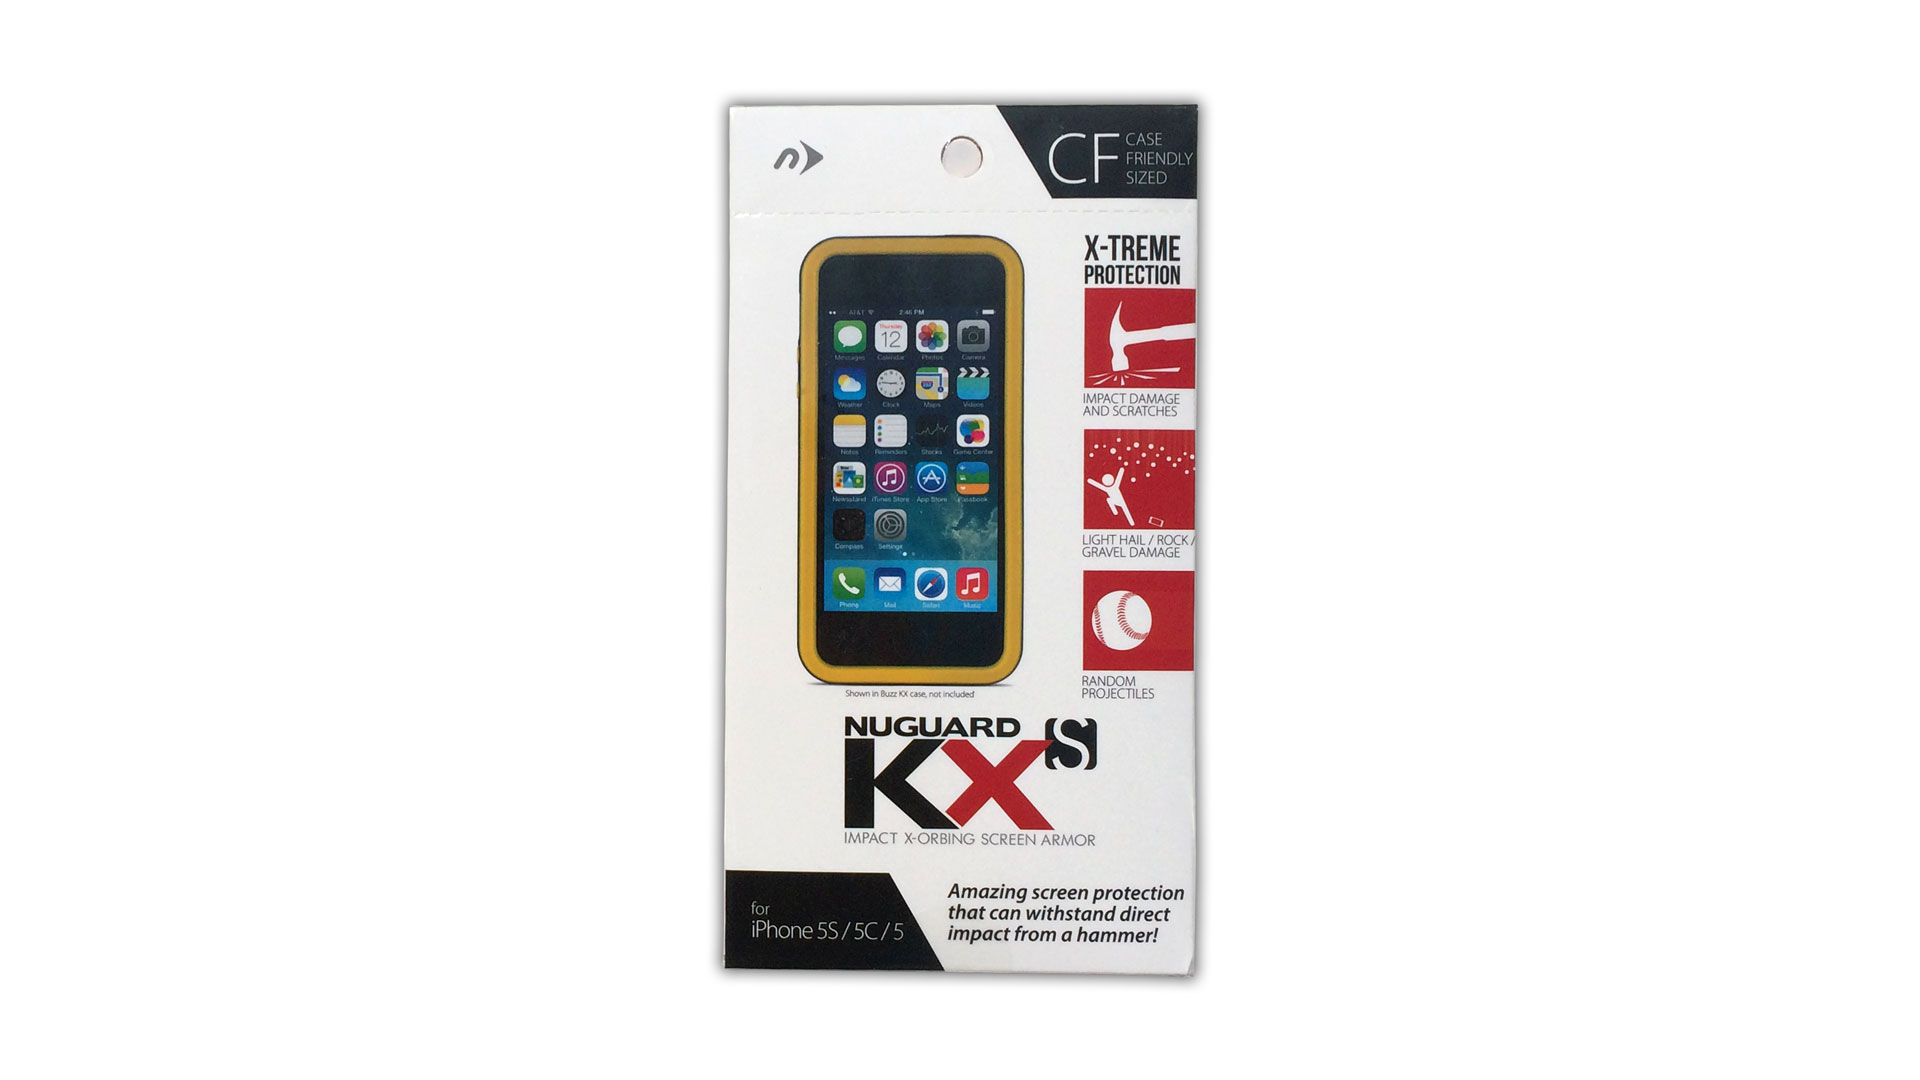 nuguard-kx-screen-protector-packaging-exterior-front-qtooth